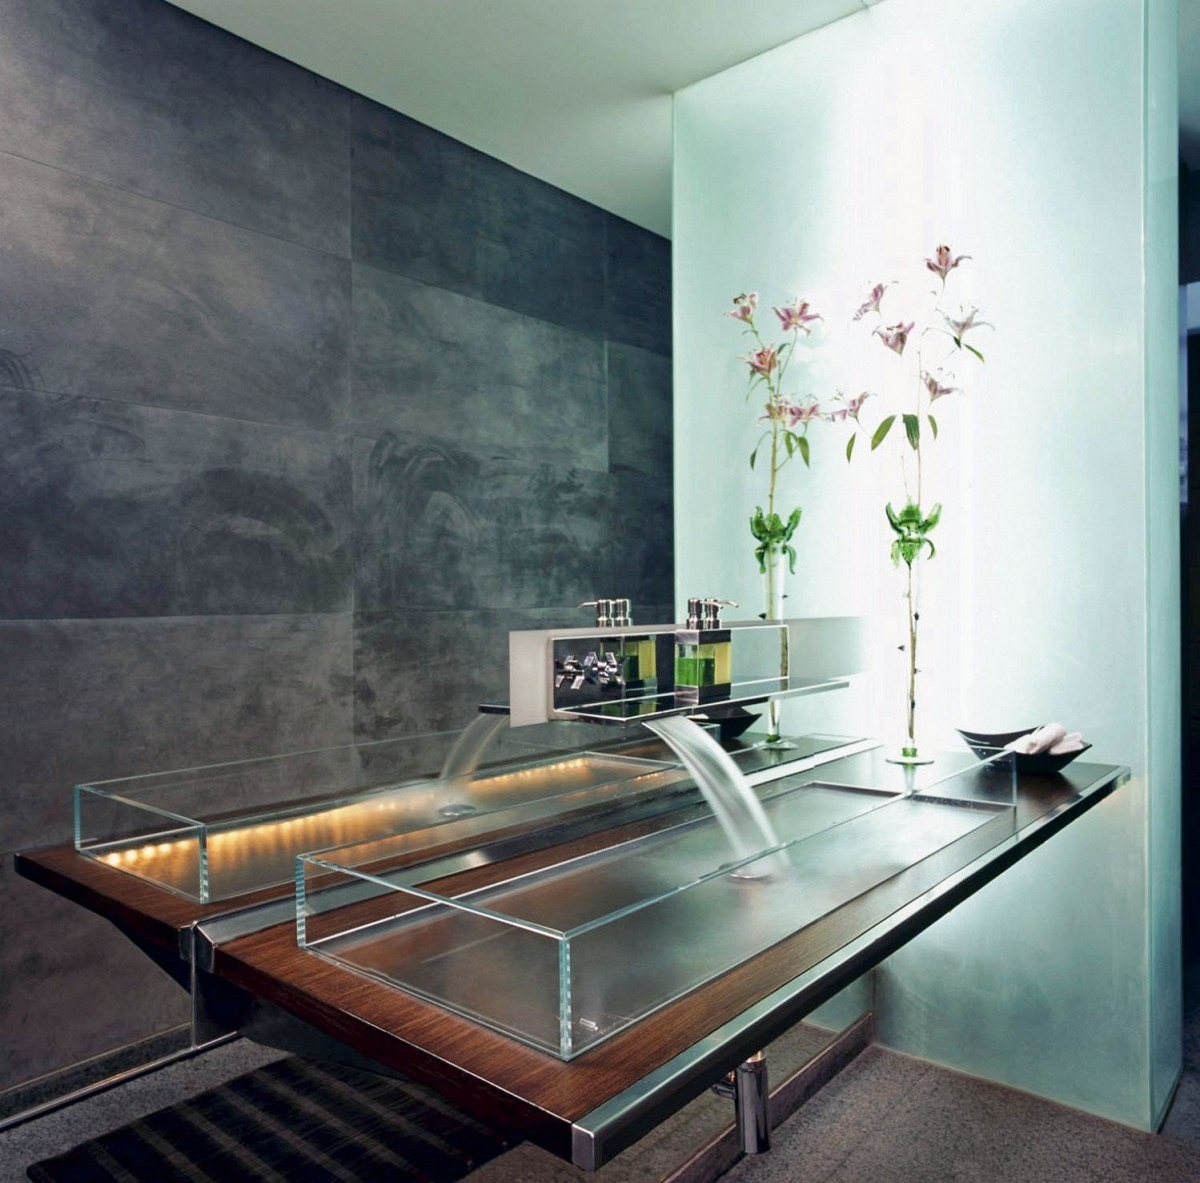 40 Modern Bathroom Vanities That Overflow With Style images 30